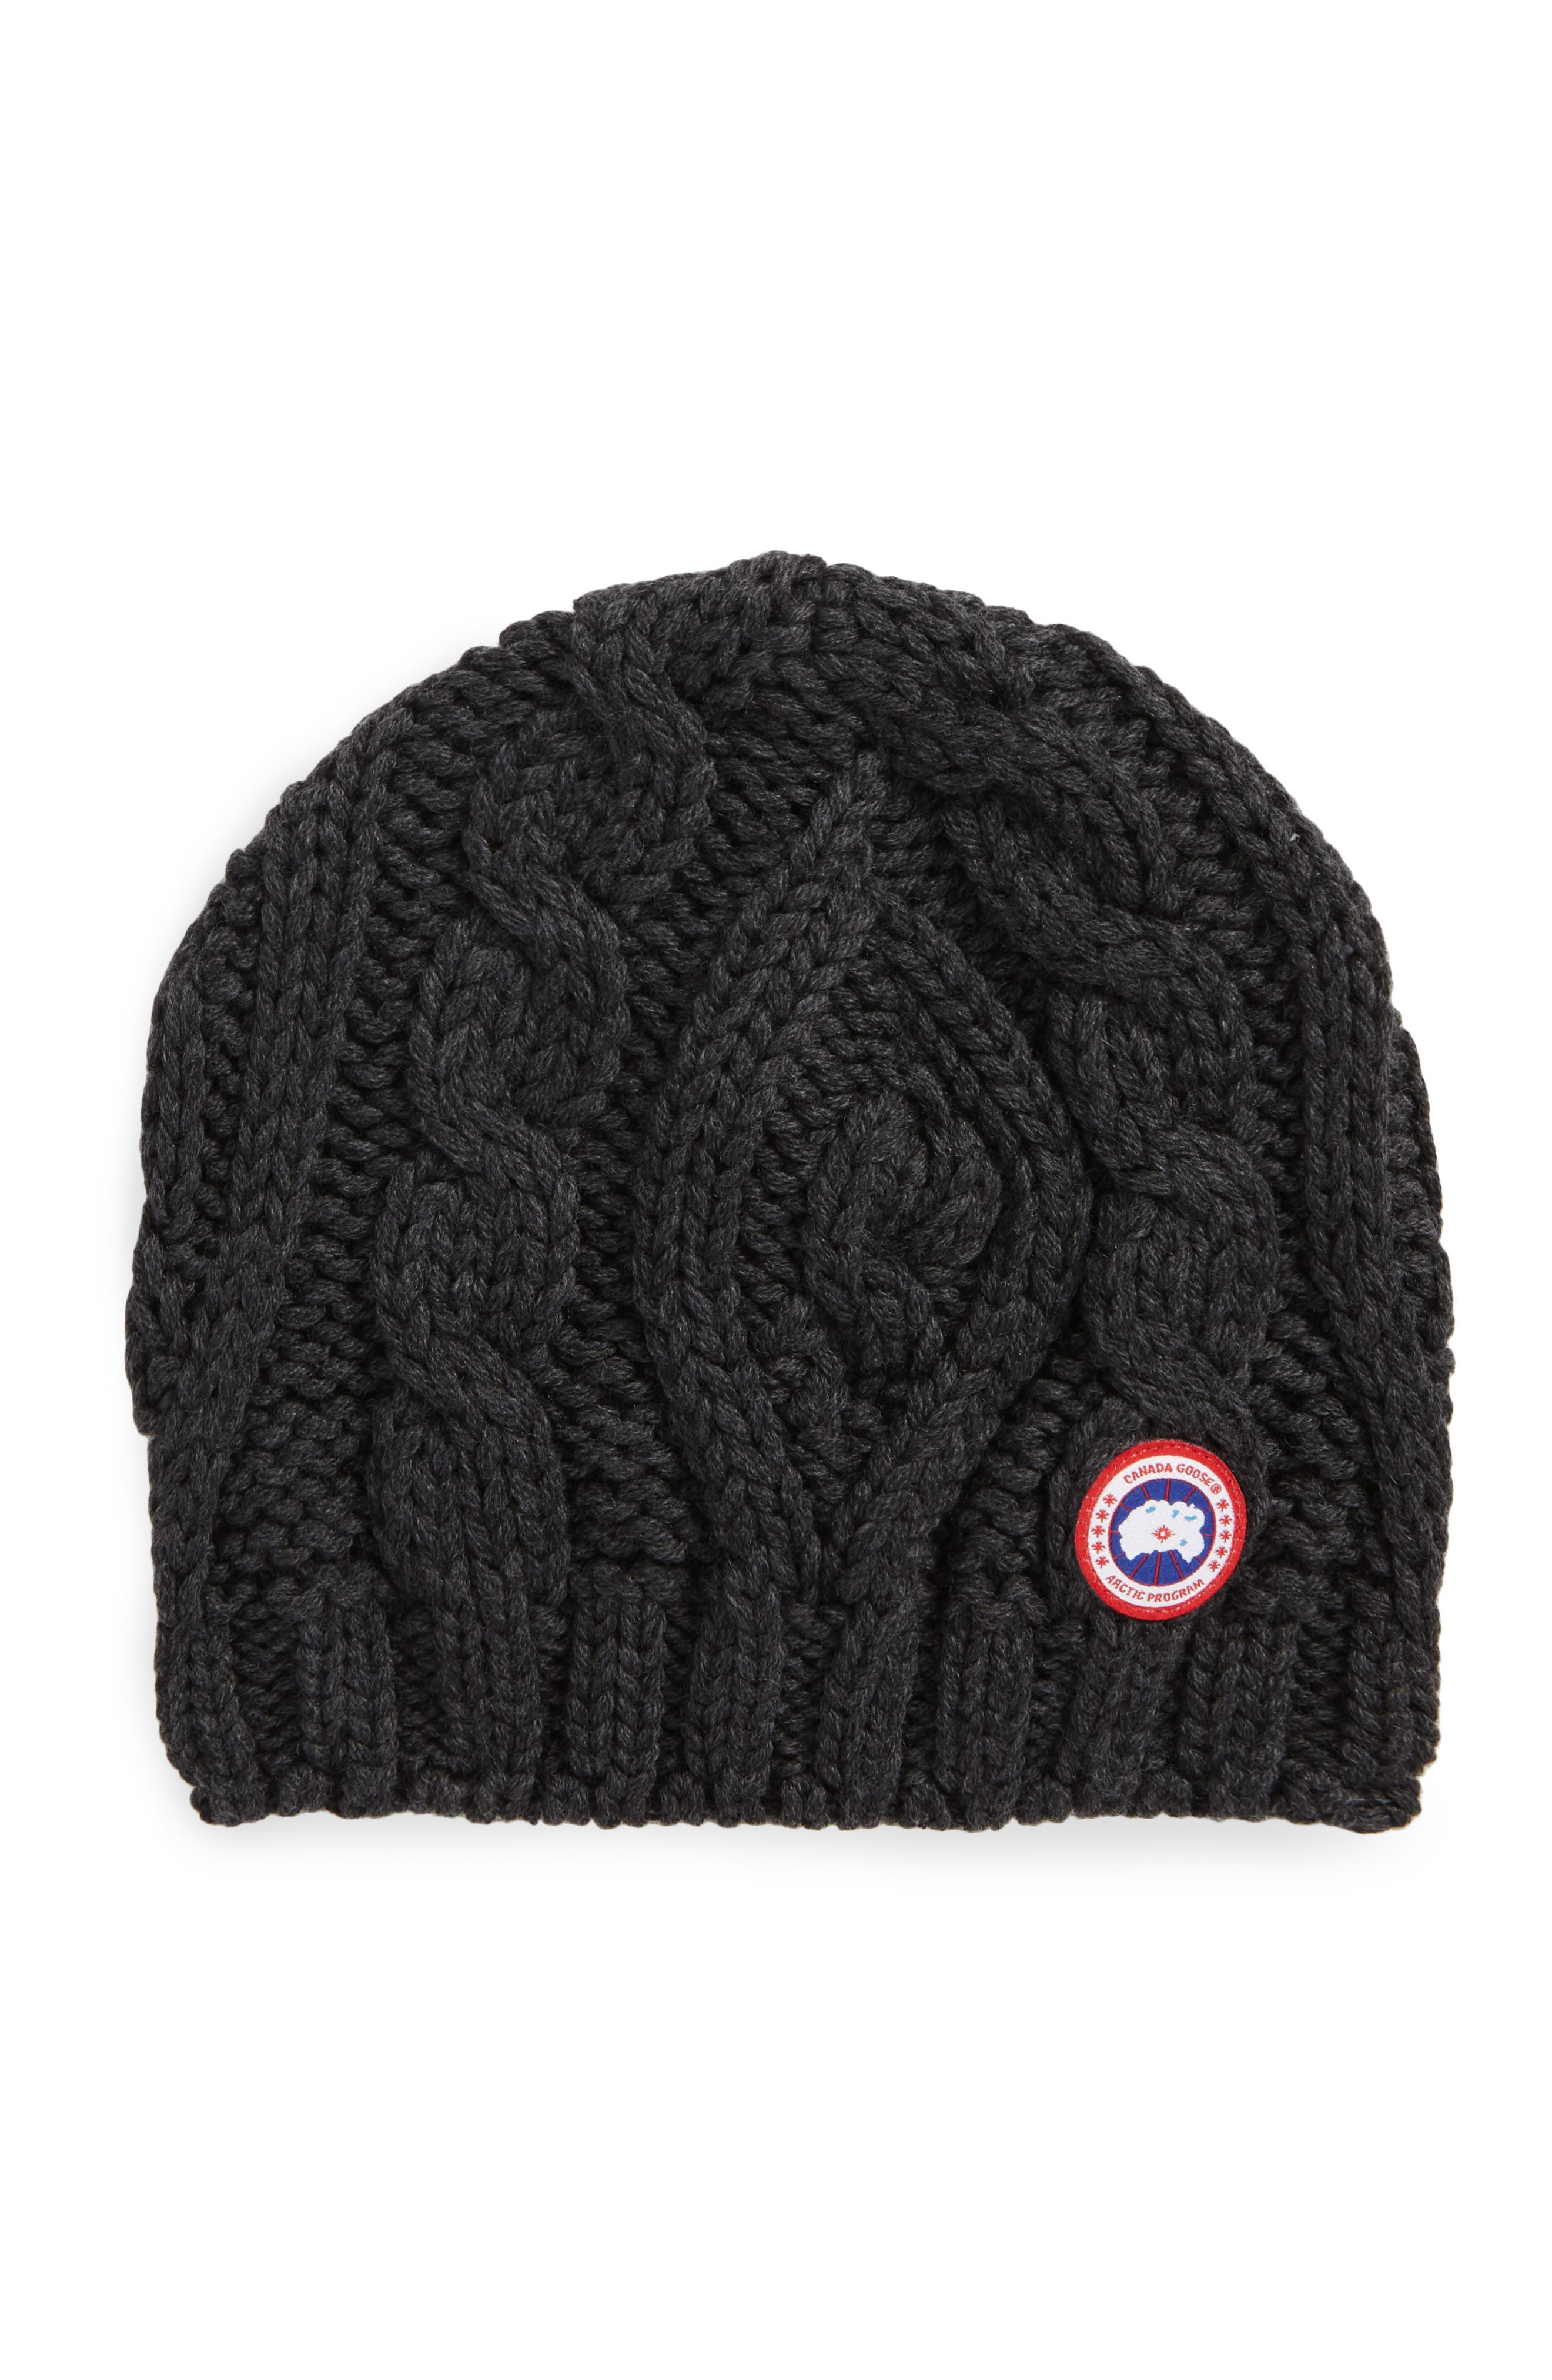 Main Image - Canada Goose Cable Knit Merino Wool Beanie